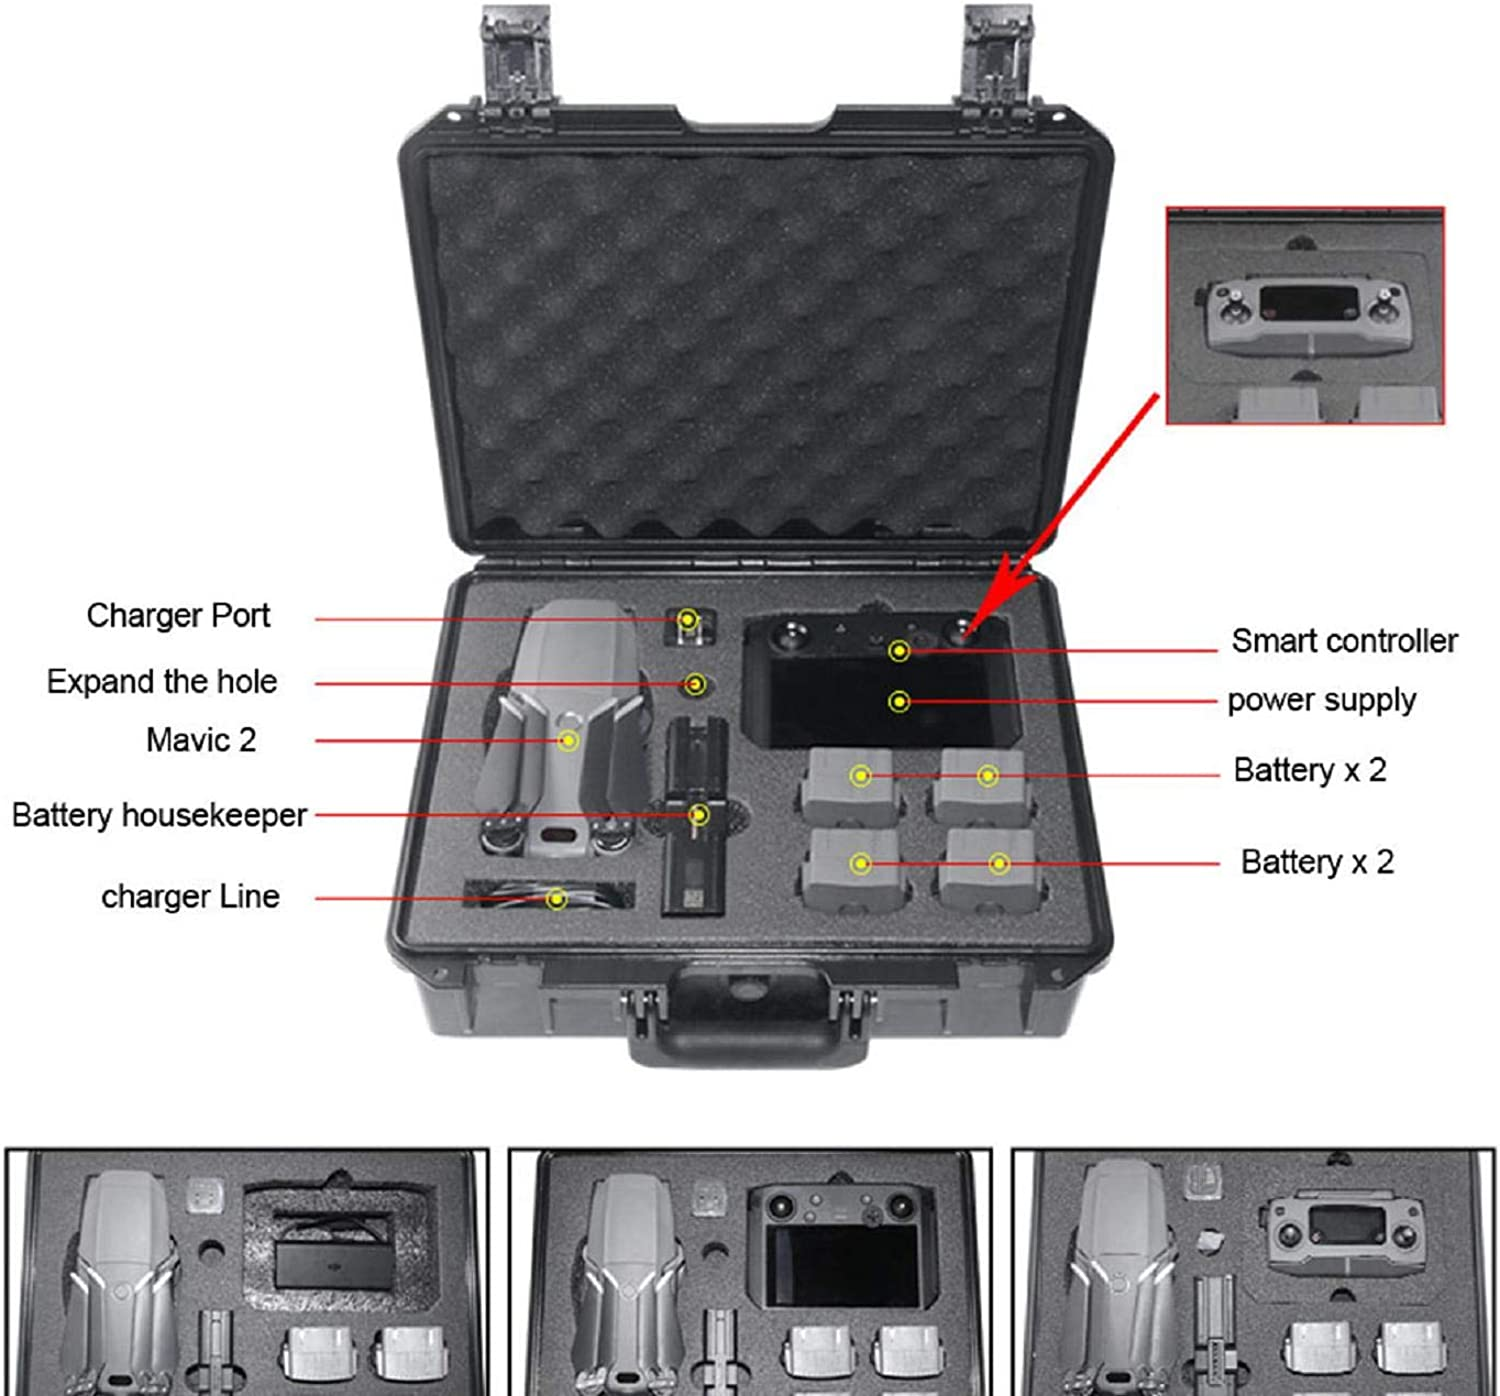 Cinhent Switch System Carrying Case – Predective Deluxe Travel System Case Military Spec Hardshell Carrying Case Bag for DJI Mavic 2 & Smart Controller